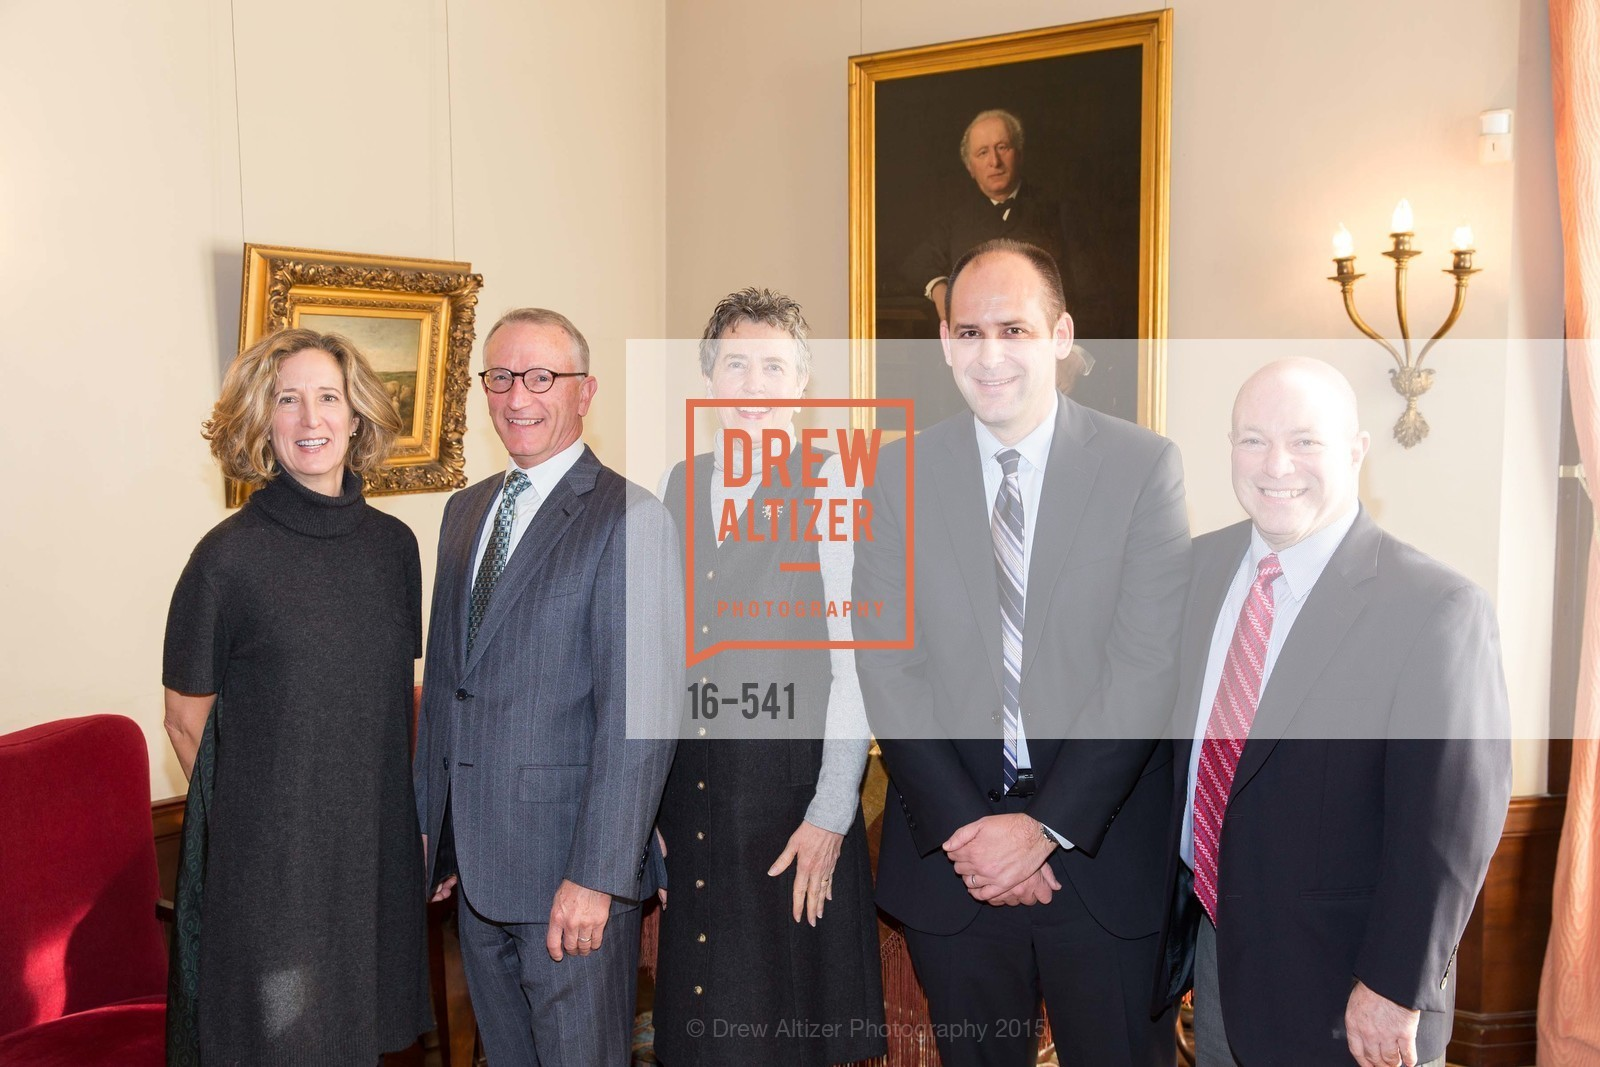 Courtney Damkroger, David Wessel, Alice Russell-Shapiro, Mike Buhler, John Rothmann, Ceremony Inaugurating the Campaign for San Francisco Heritage & Haas-Lilienthal House, Haas-Lilienthal House. 2007 Franklin Street, November 18th, 2015,Drew Altizer, Drew Altizer Photography, full-service agency, private events, San Francisco photographer, photographer california